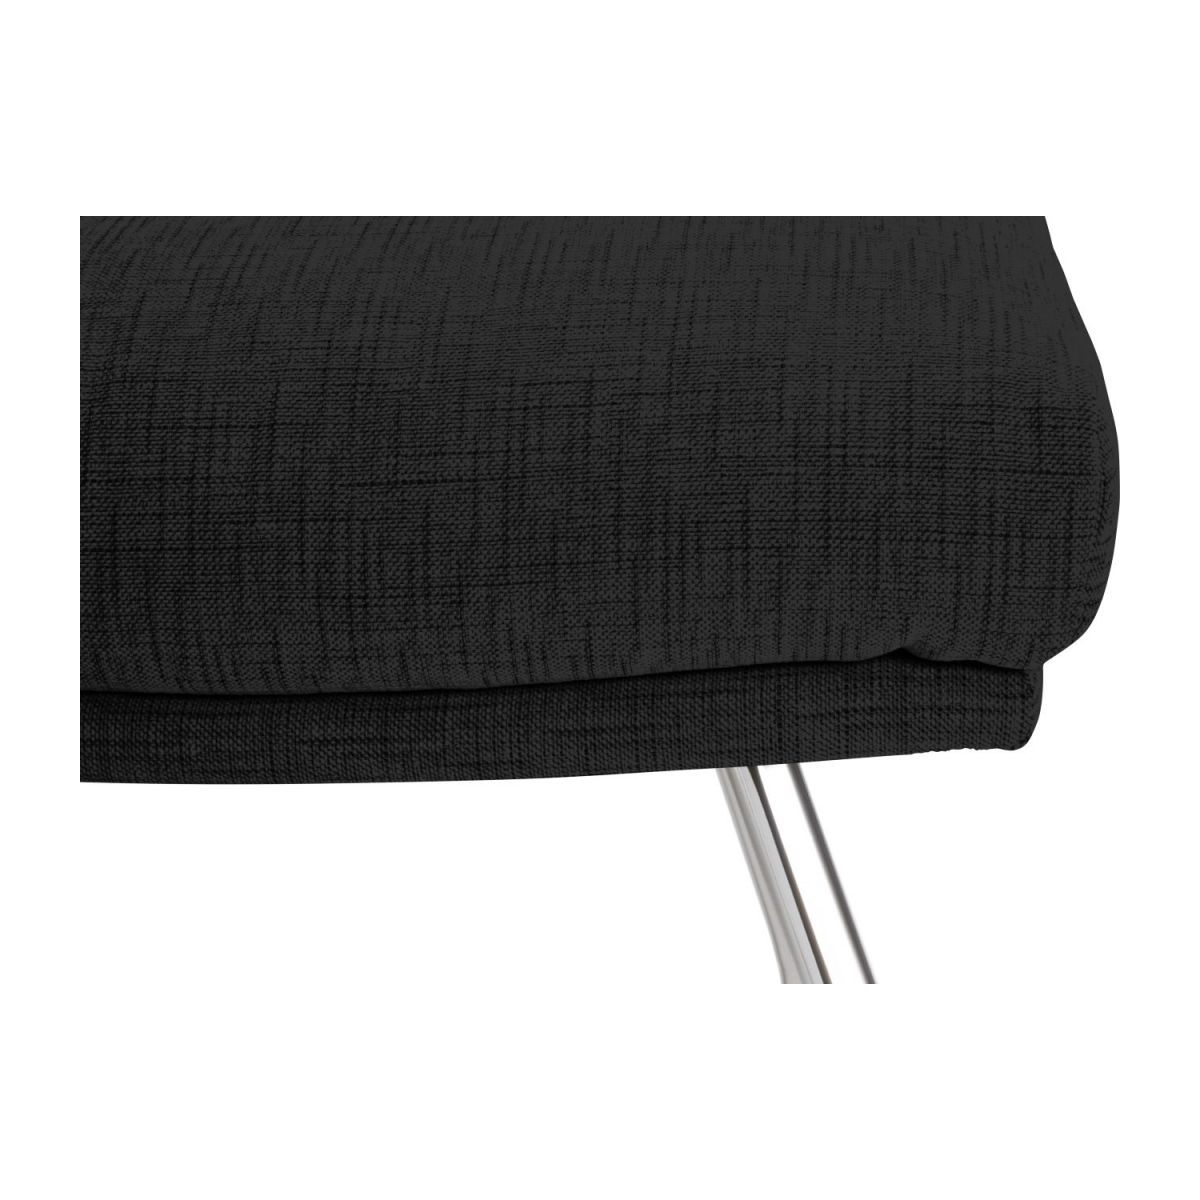 Footstool in Ancio fabric, nero with chromed metal legs n°6